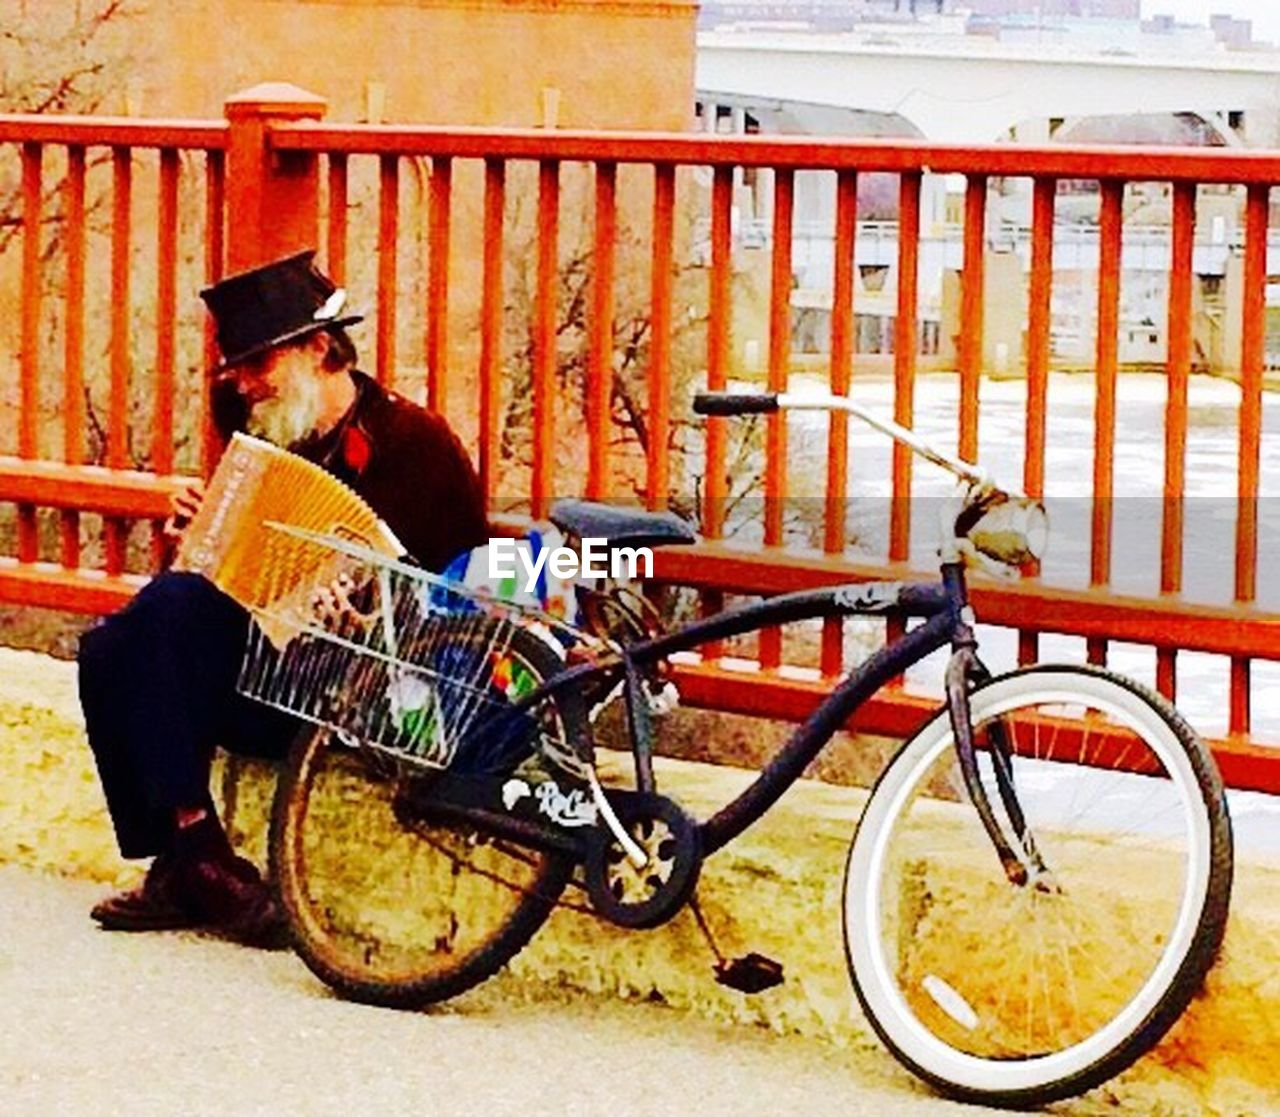 bicycle, transportation, real people, land vehicle, one person, full length, mode of transport, day, outdoors, stationary, young adult, people